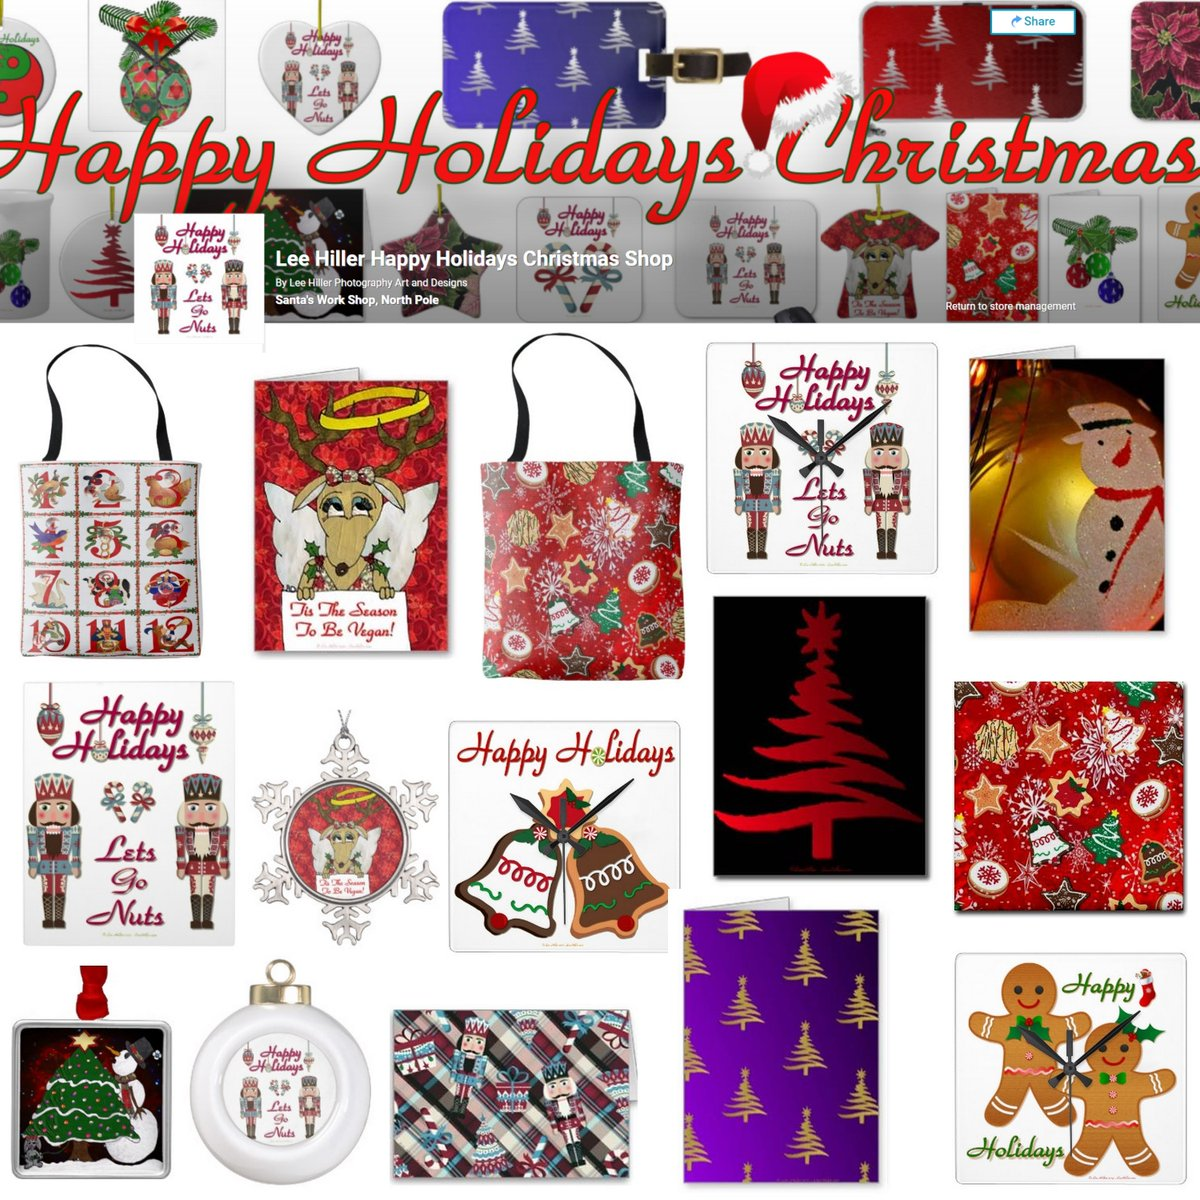 🎄🌟🎁⛄❄️🔔🎅🔔❄️⛄🌟🎄 The Happy #holidays #Christmas #GiftShop is always open check for daily #discountcodes  #gifts #giftsforhim #giftsforher #shopping  🌏#WorldWide #shipping 🌏 #us #ca #jp #eu #au #nz #uk #de #fr 👉 #Free #Personalization 👈